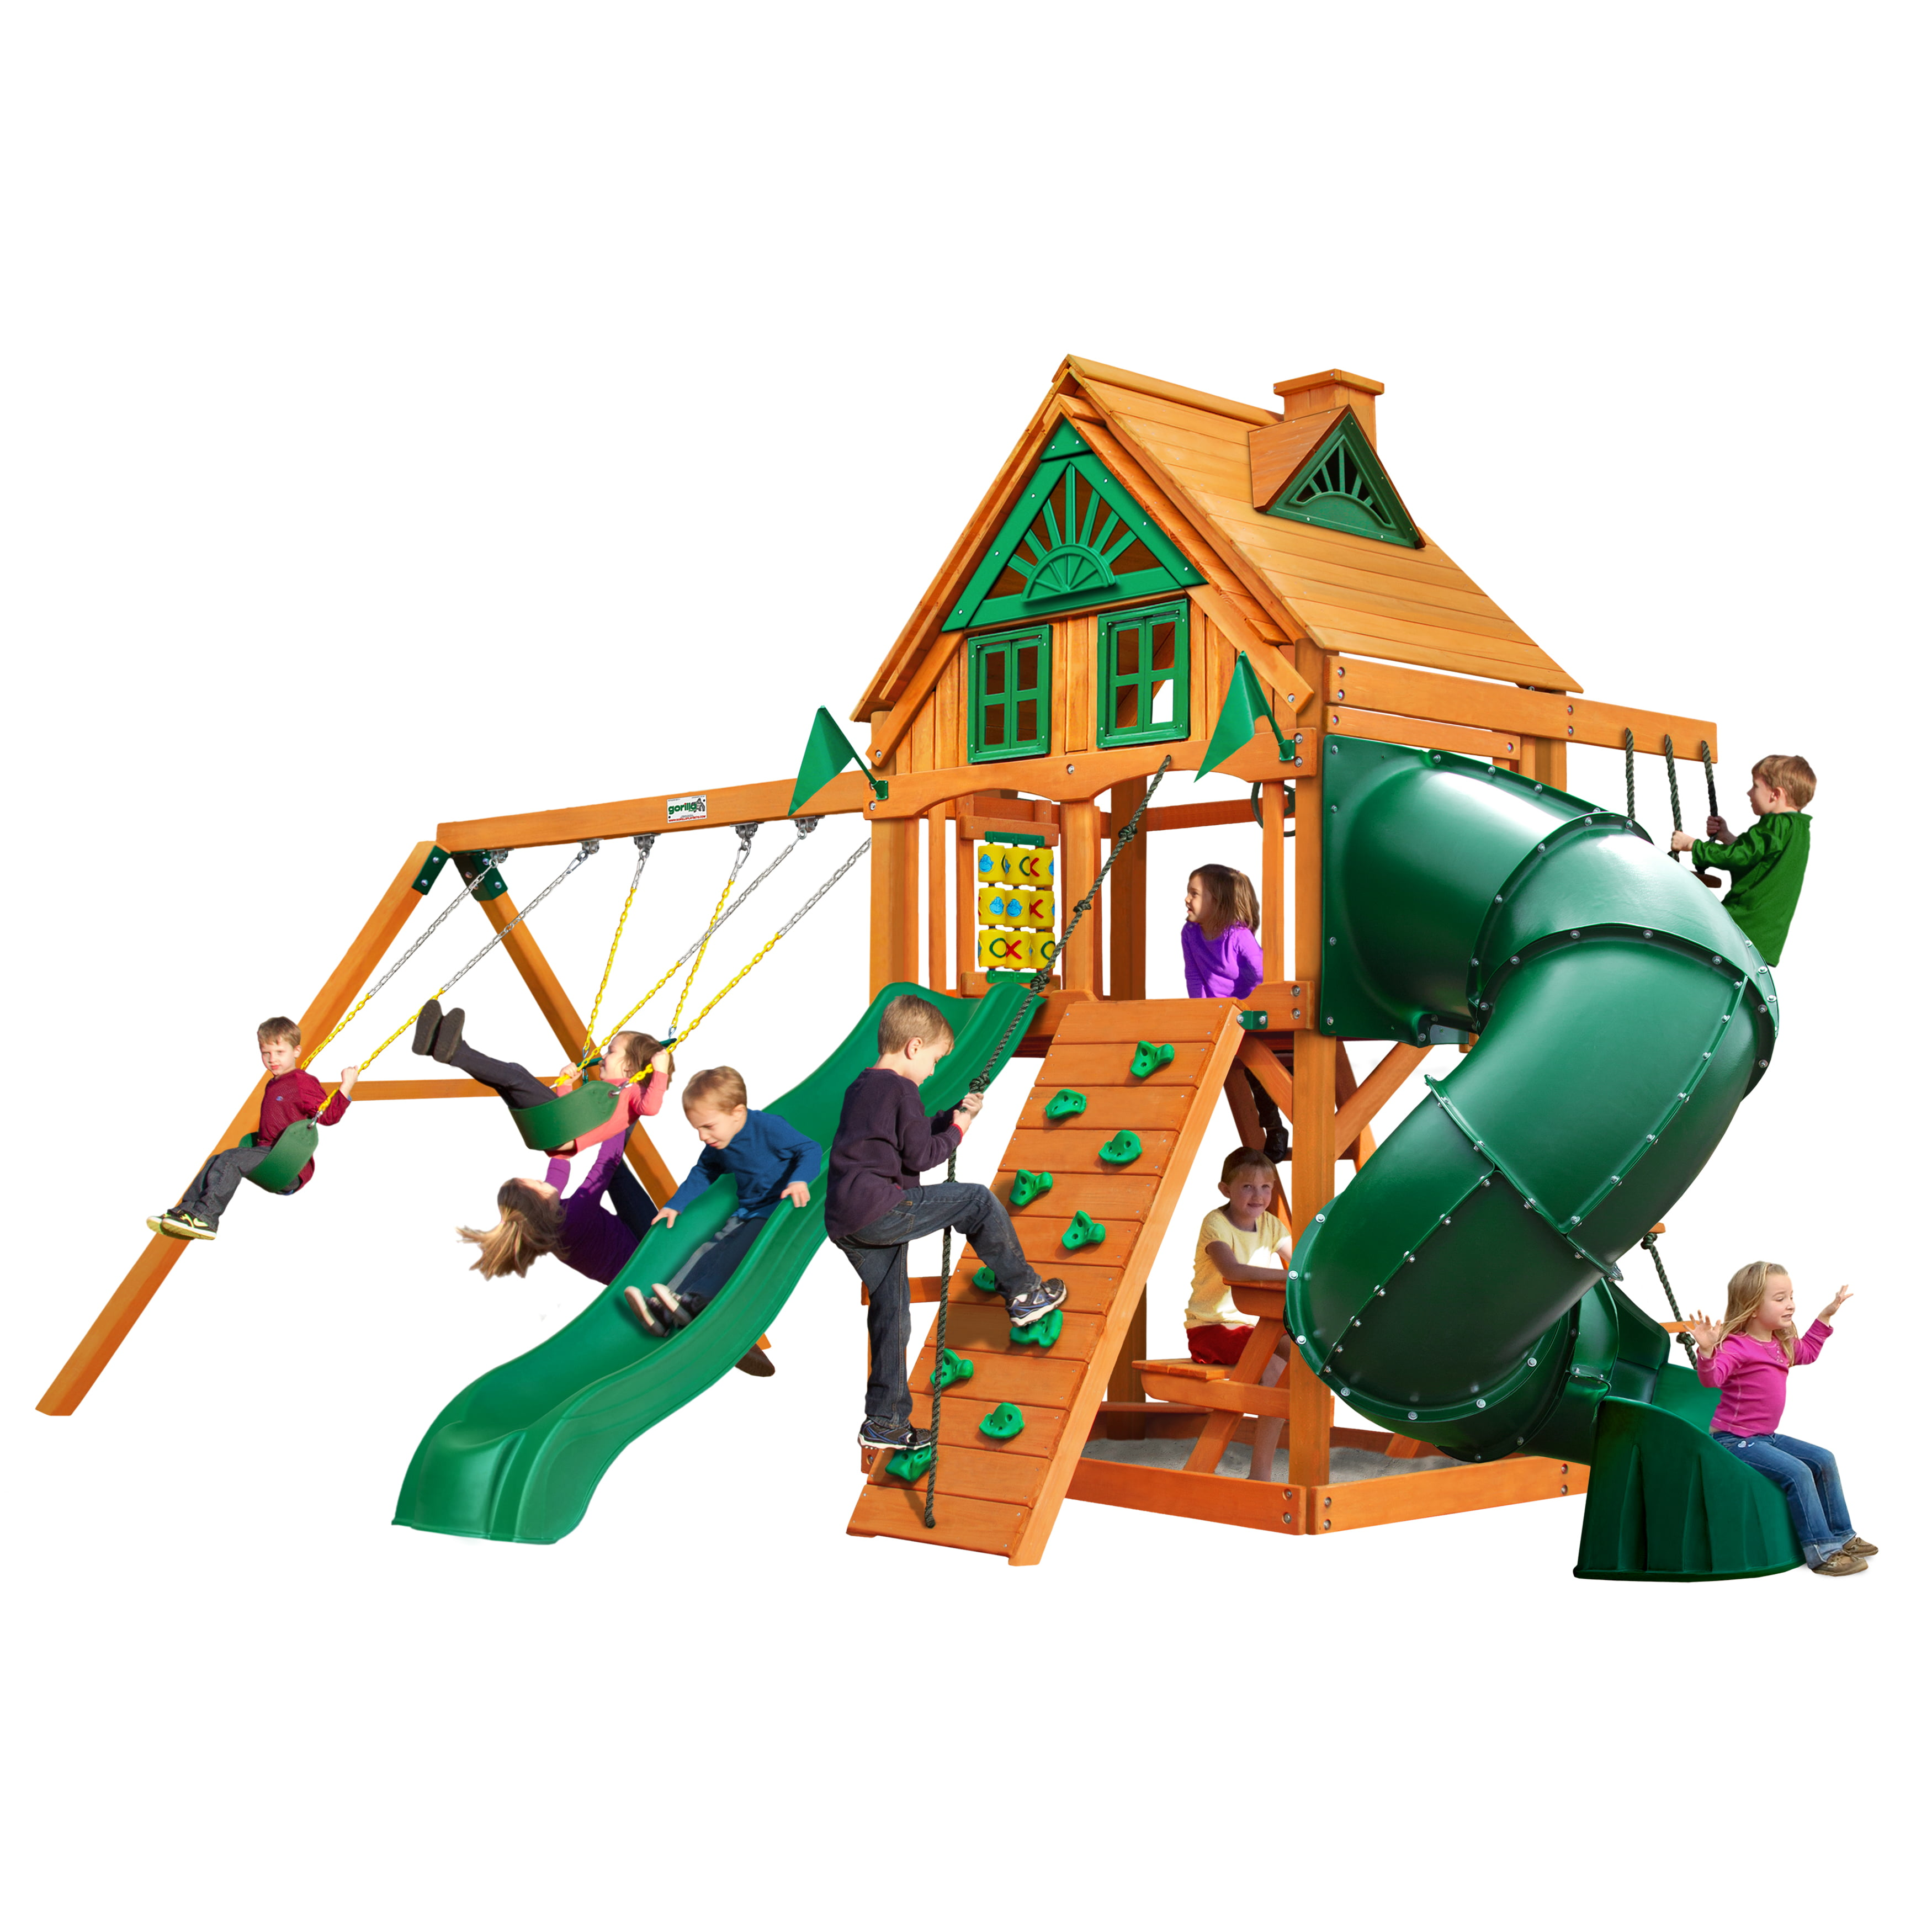 Gorilla Playsets Mountaineer Treehouse Wooden Swing Set with Tube Slide, Rope Ladder, and Sandbox by Gorilla Playsets